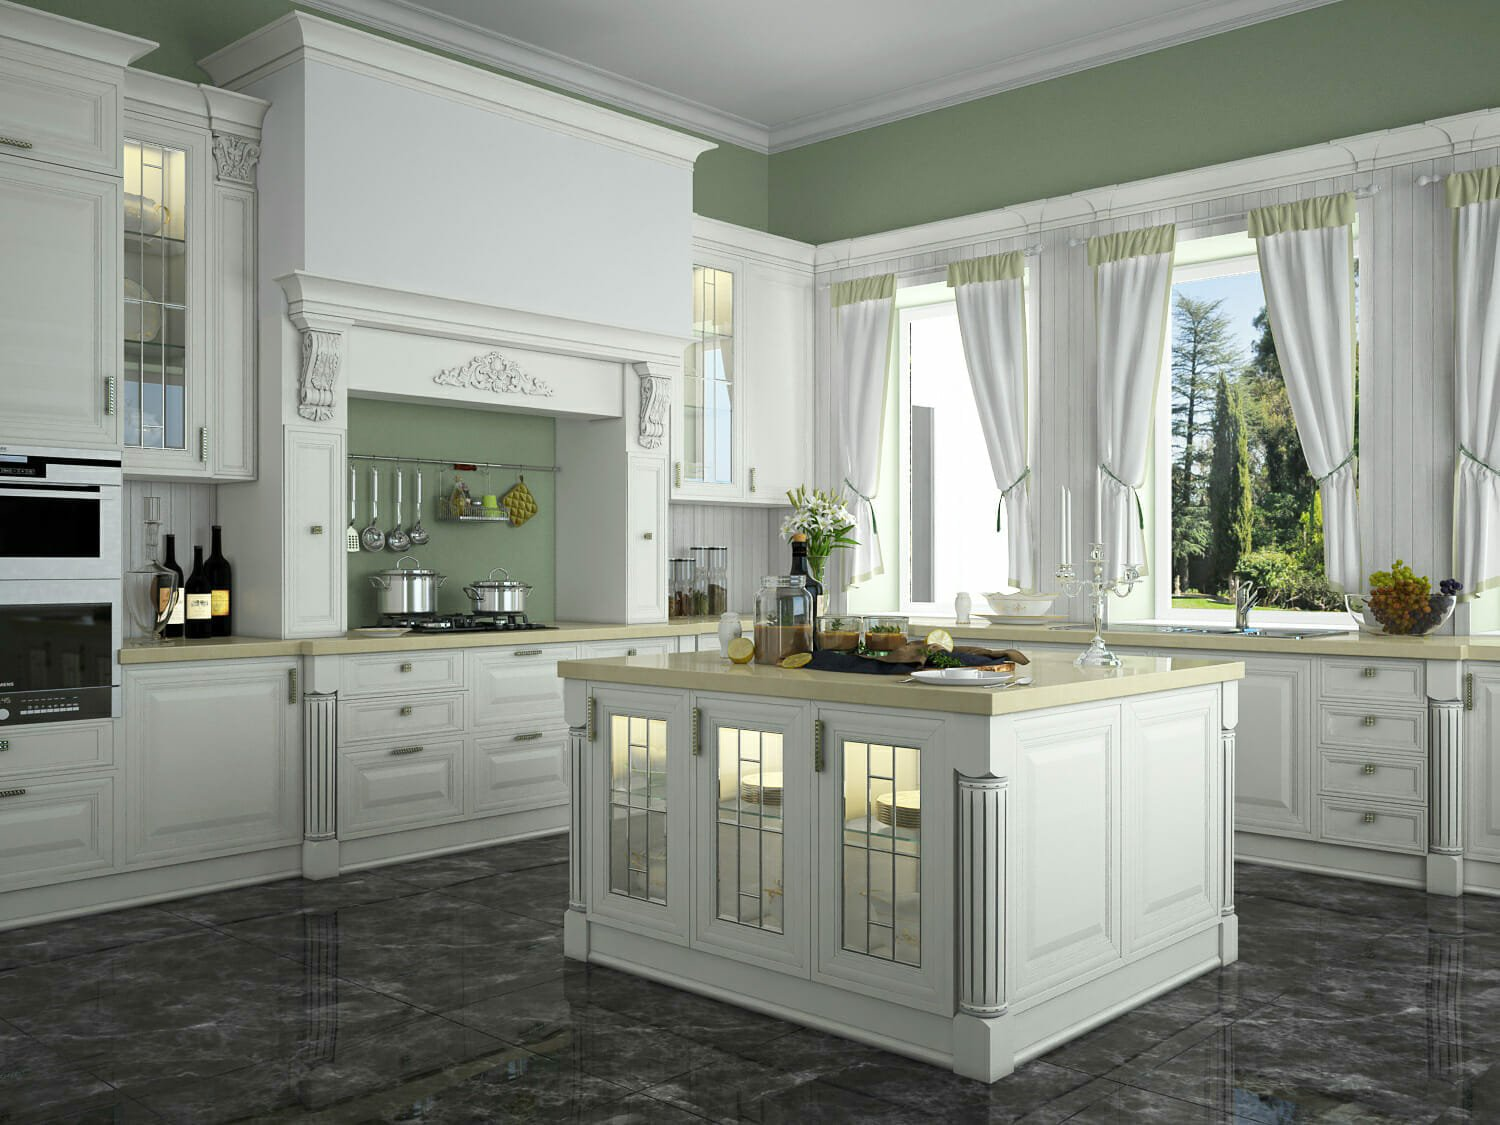 benjamin moore paint colors french kitchen rendering